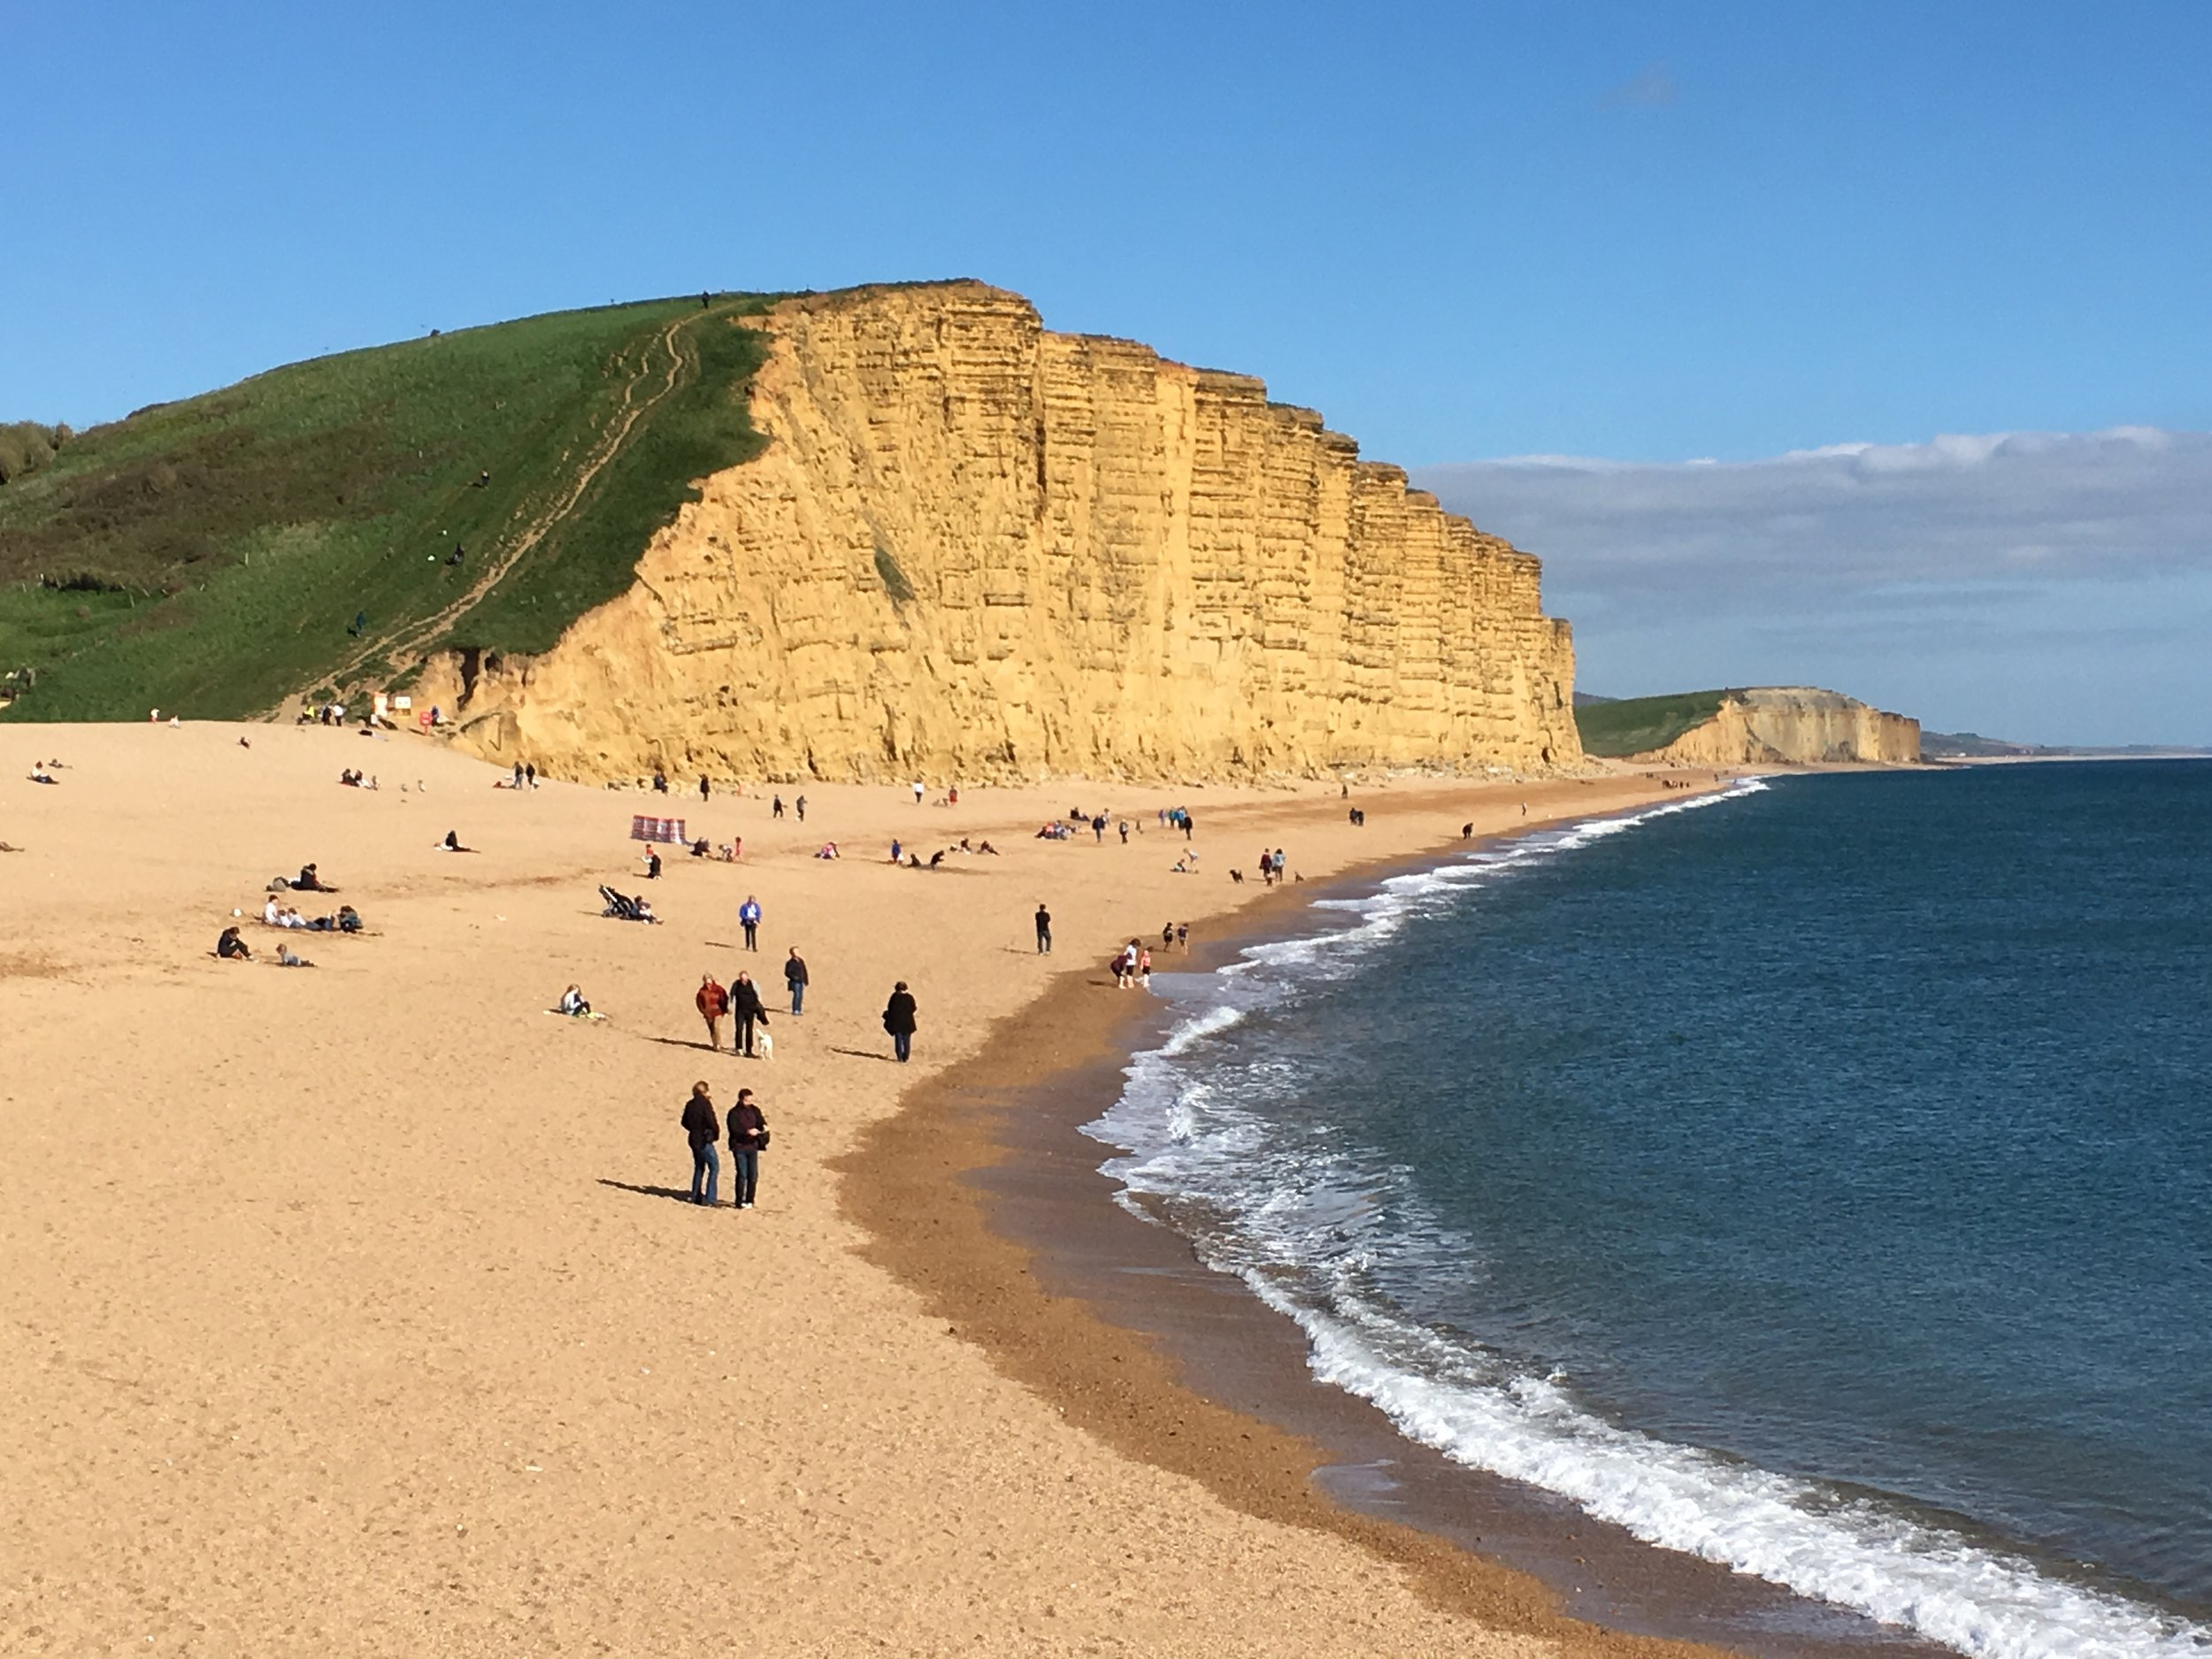 West Bay, location of ITV's Broadchurch